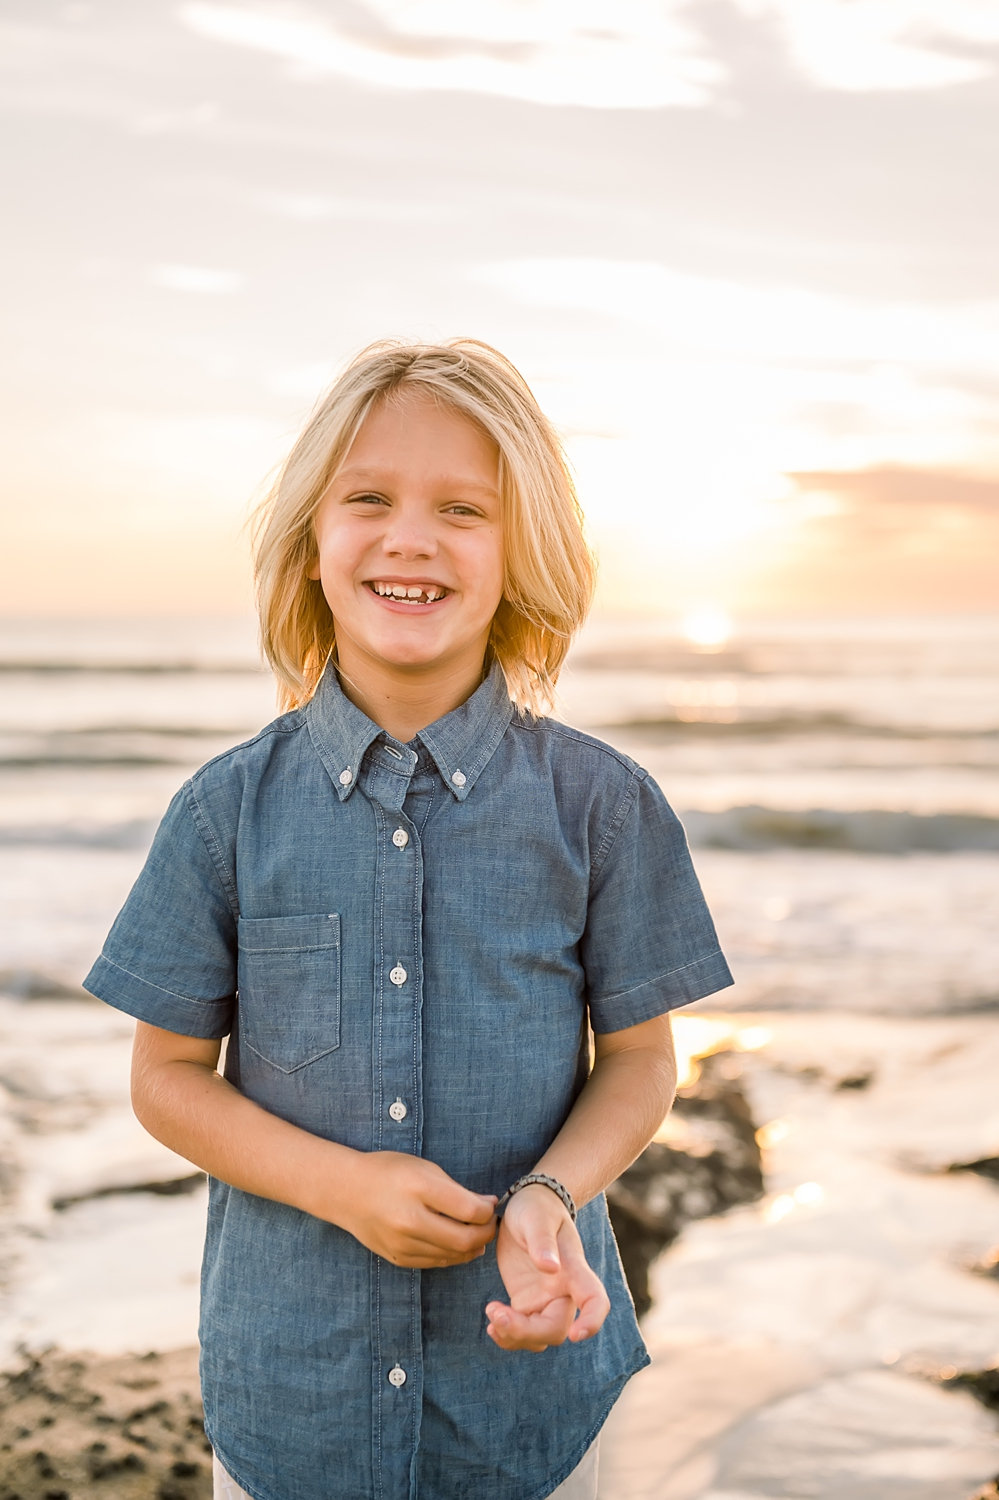 portrait of a little boy on Saint Augustine Beach, he is wearing a short sleeved denim shirt